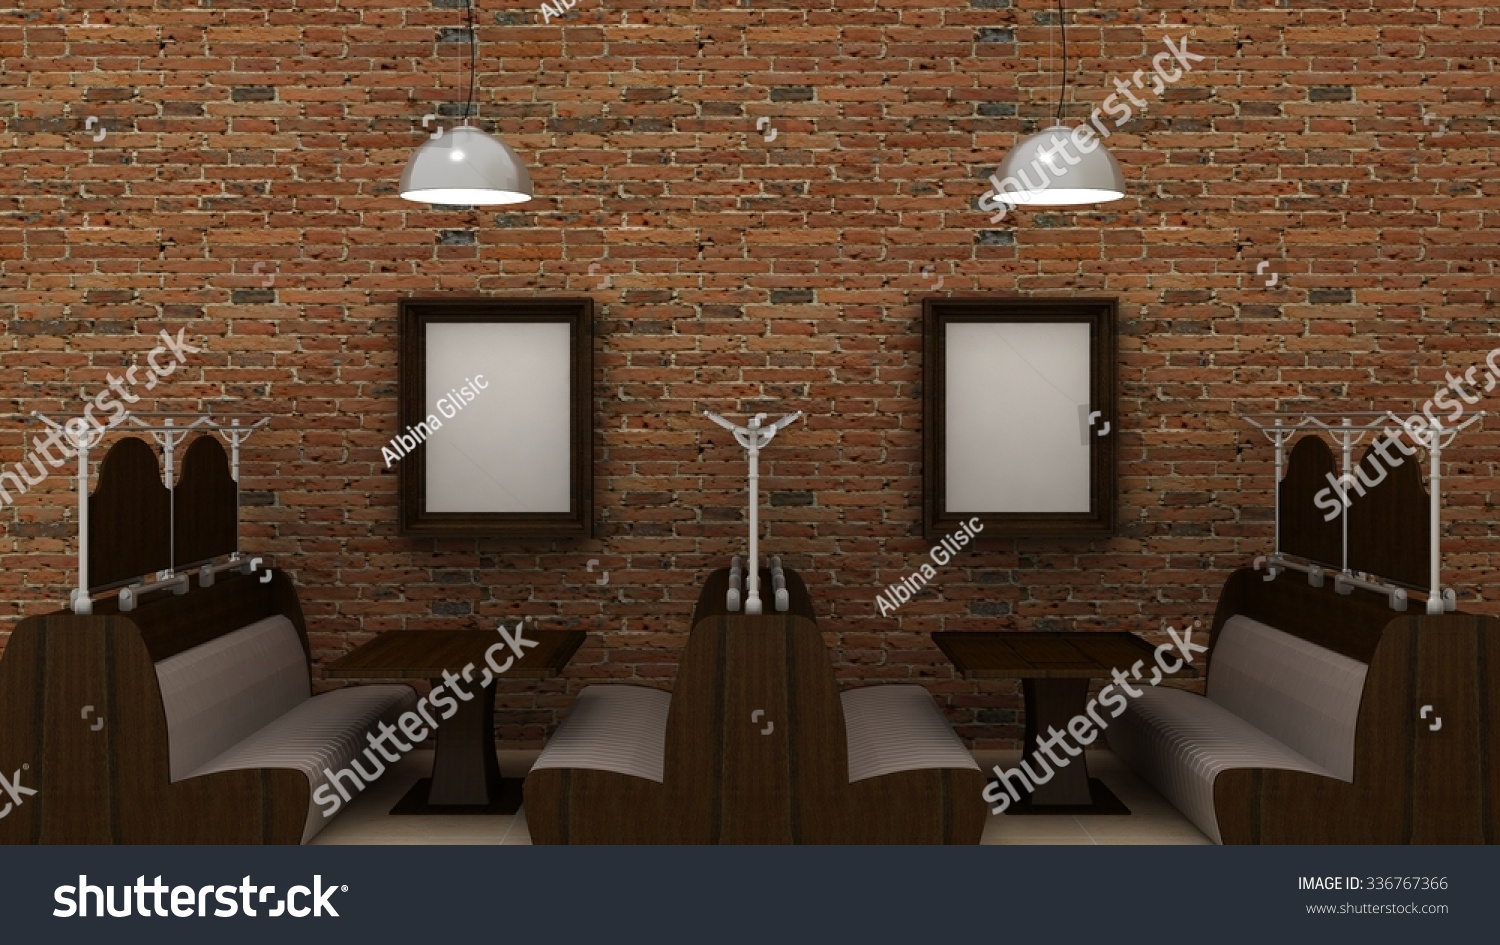 empty picture frames classic cafe interior stock illustration